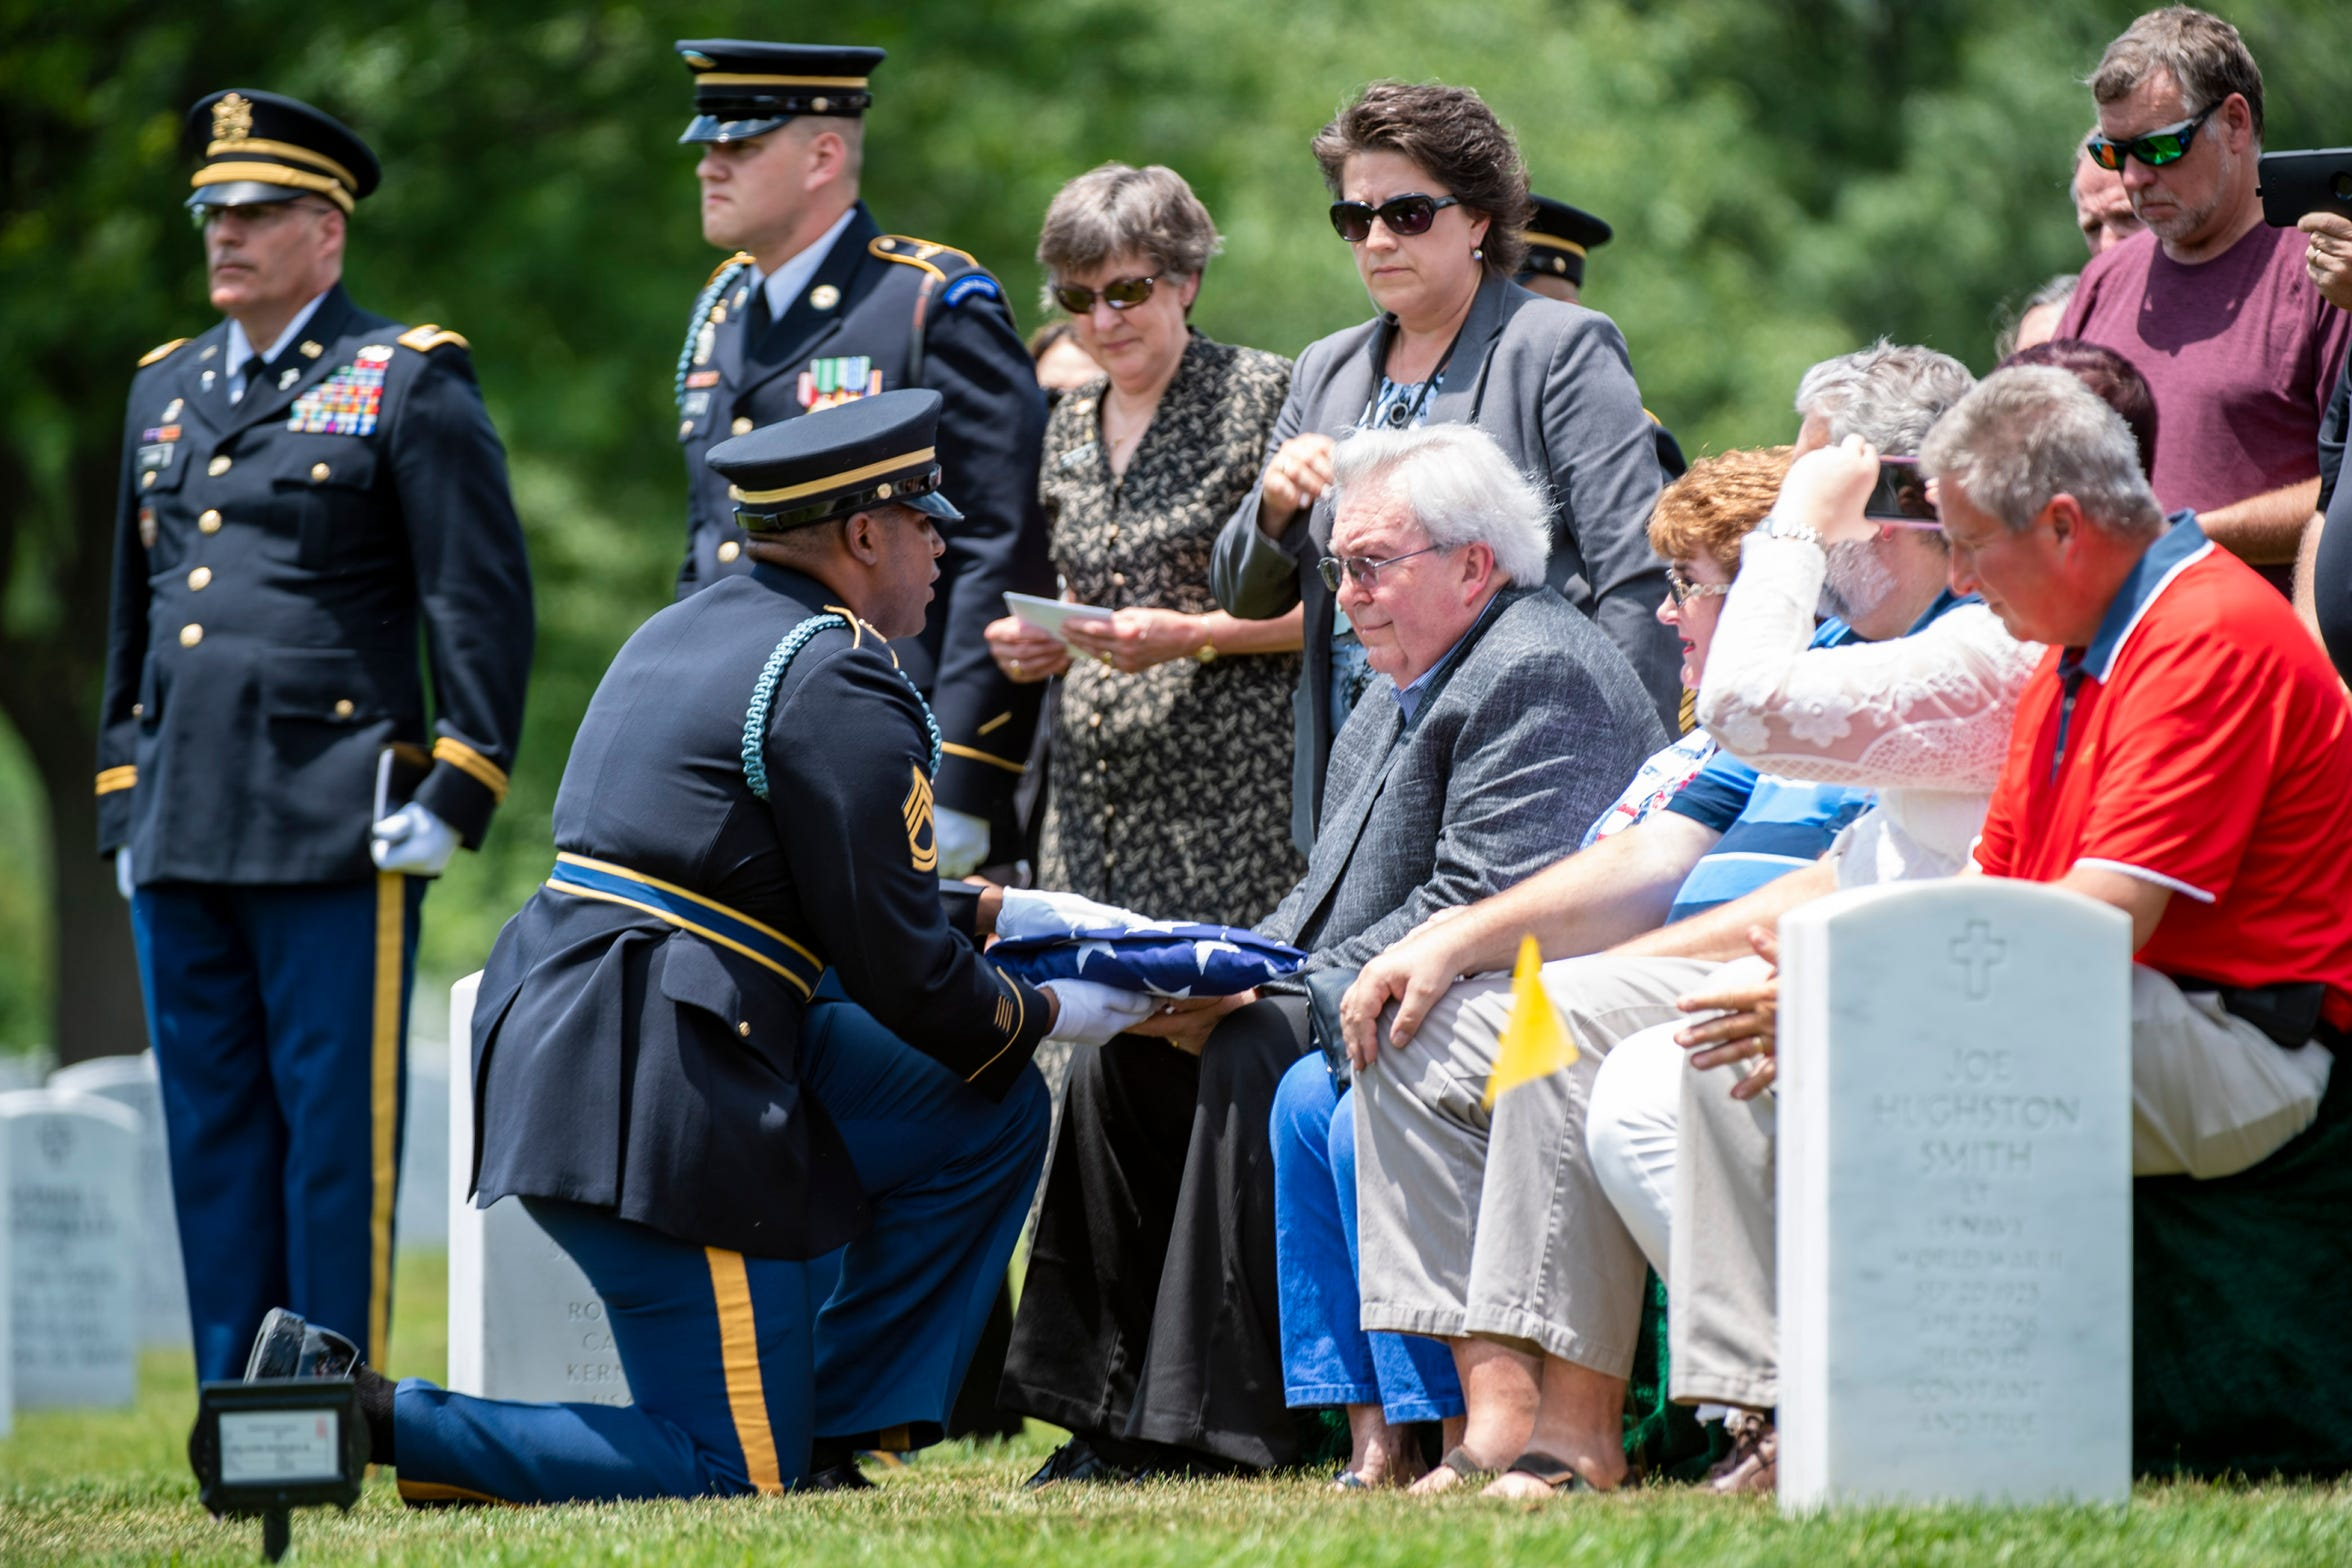 Carl Man II is presented with the flag during U.S. Army World War II veteran Carl Mann of Evansville, Ind., burial at Arlington National Cemetery on June 6, 2019 in Arlington, VA. For his service in World War II, Mann was awarded three Purple Hearts and seven Bronze Stars.